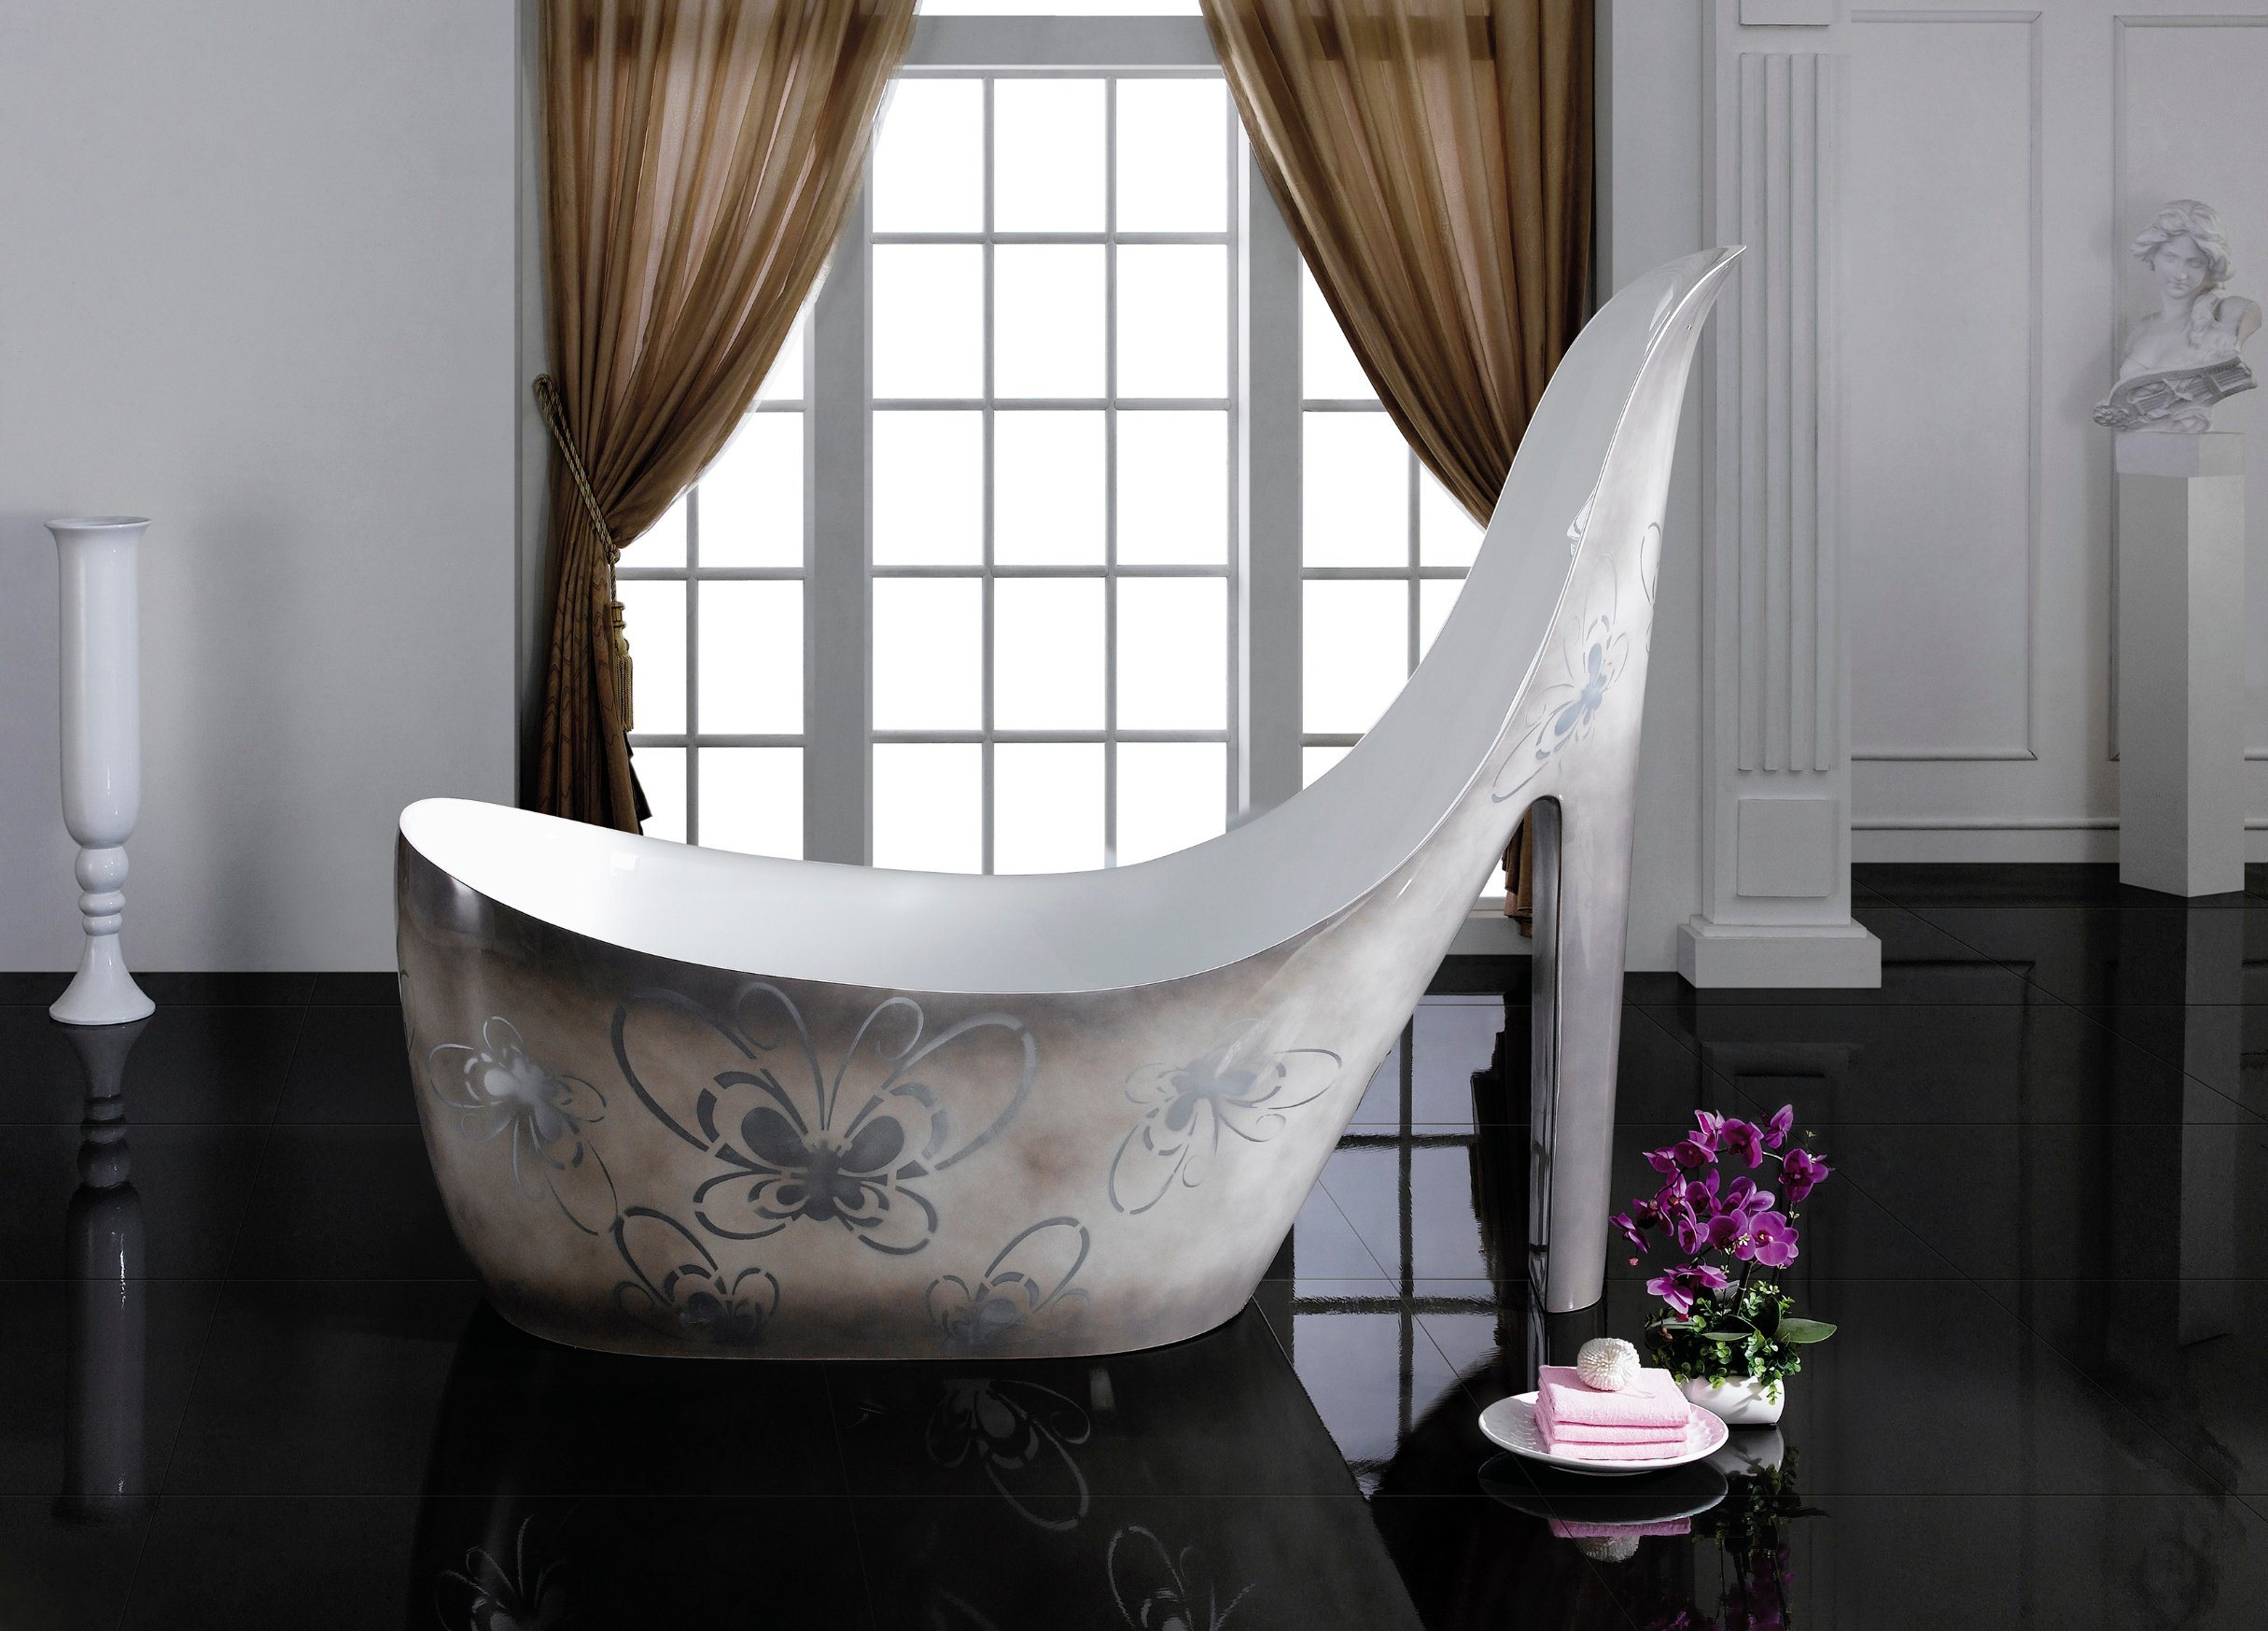 shop manufacturers freestanding slipper style brf com closeup bathtub bathtubs